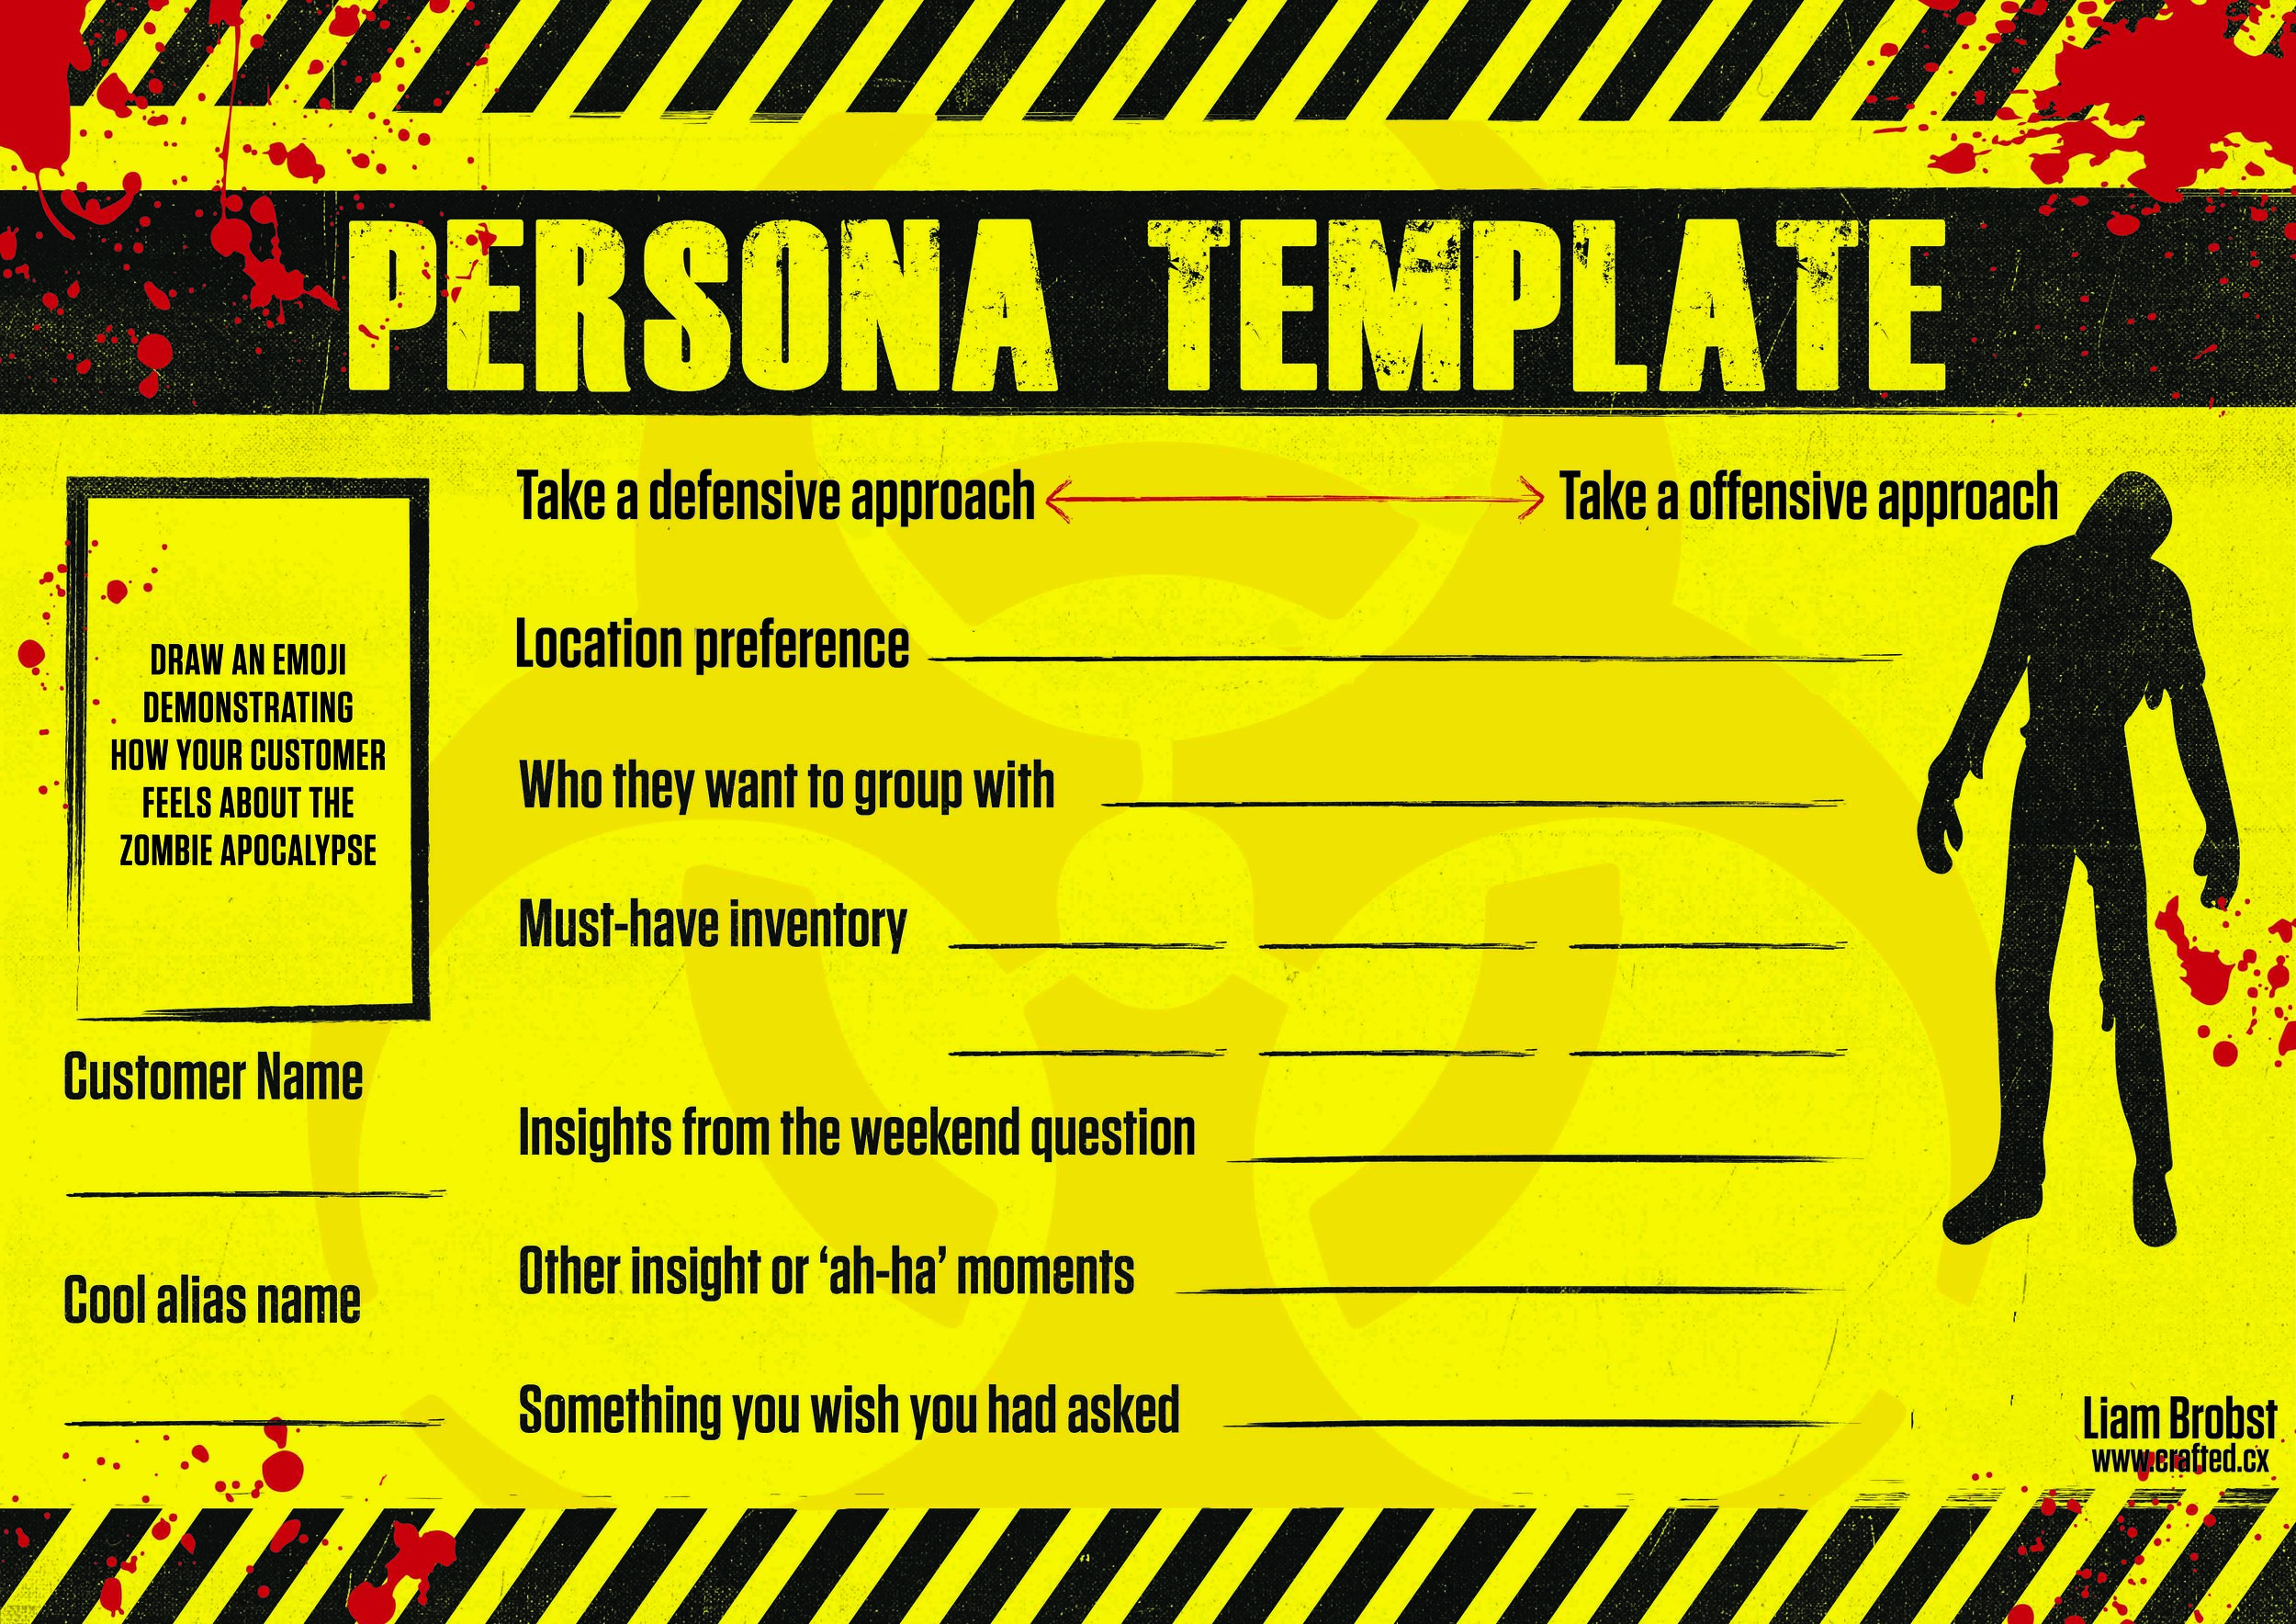 LAST Conf // Persona - Following the interview, complete this persona template.Please use under the condition that you leave my name and url on the bottom. Cheers!